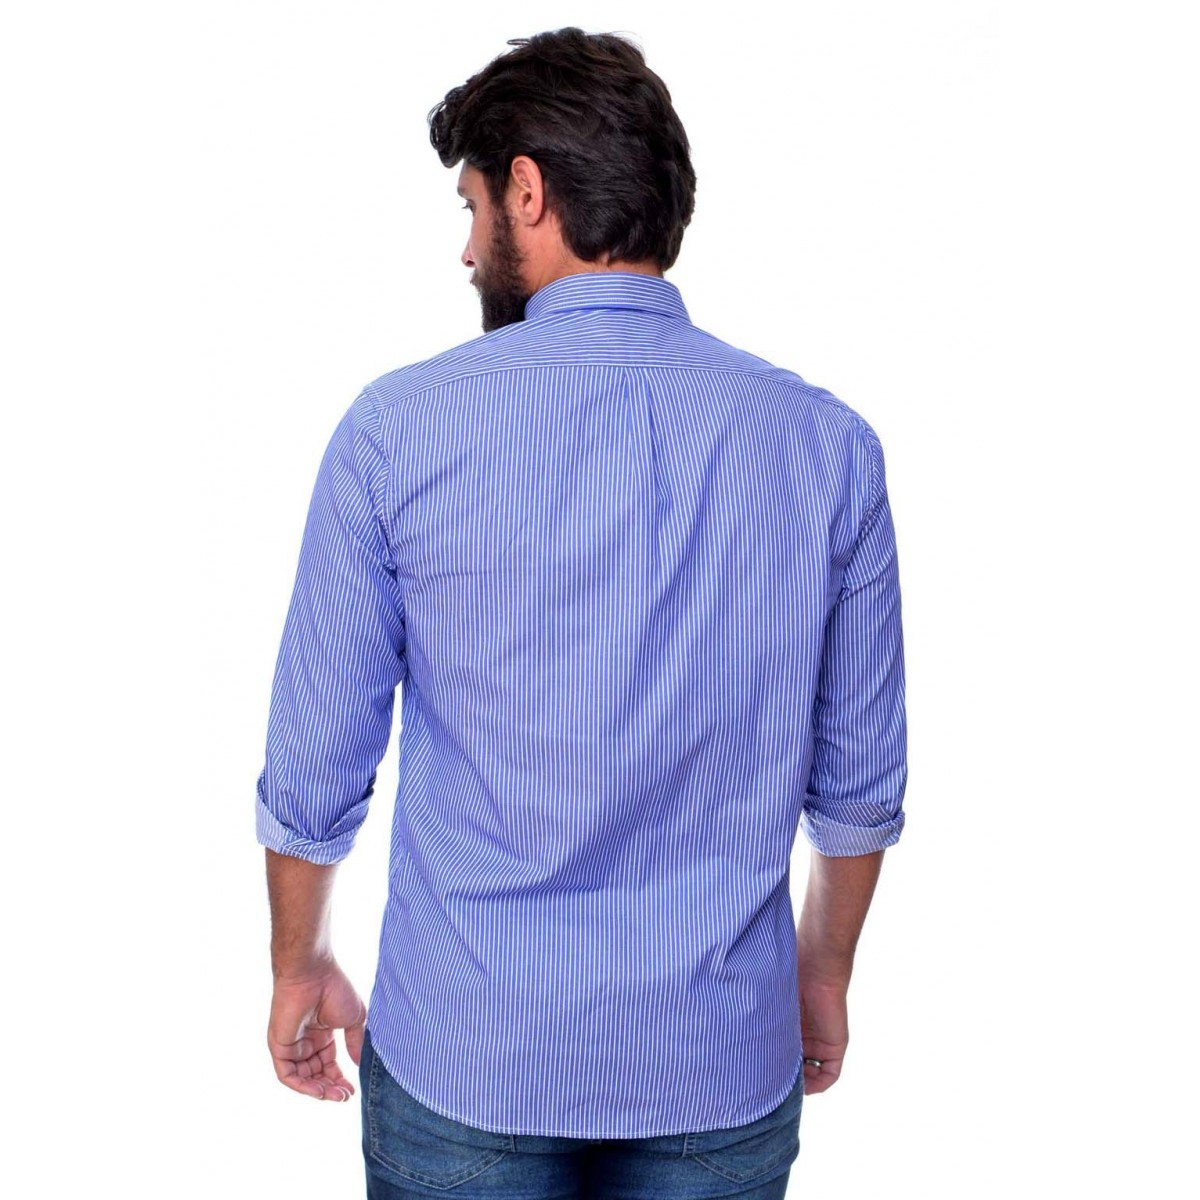 Camisa Social Listrada RL Stripes RA Blue - Regular Fit  - Ca Brasileira